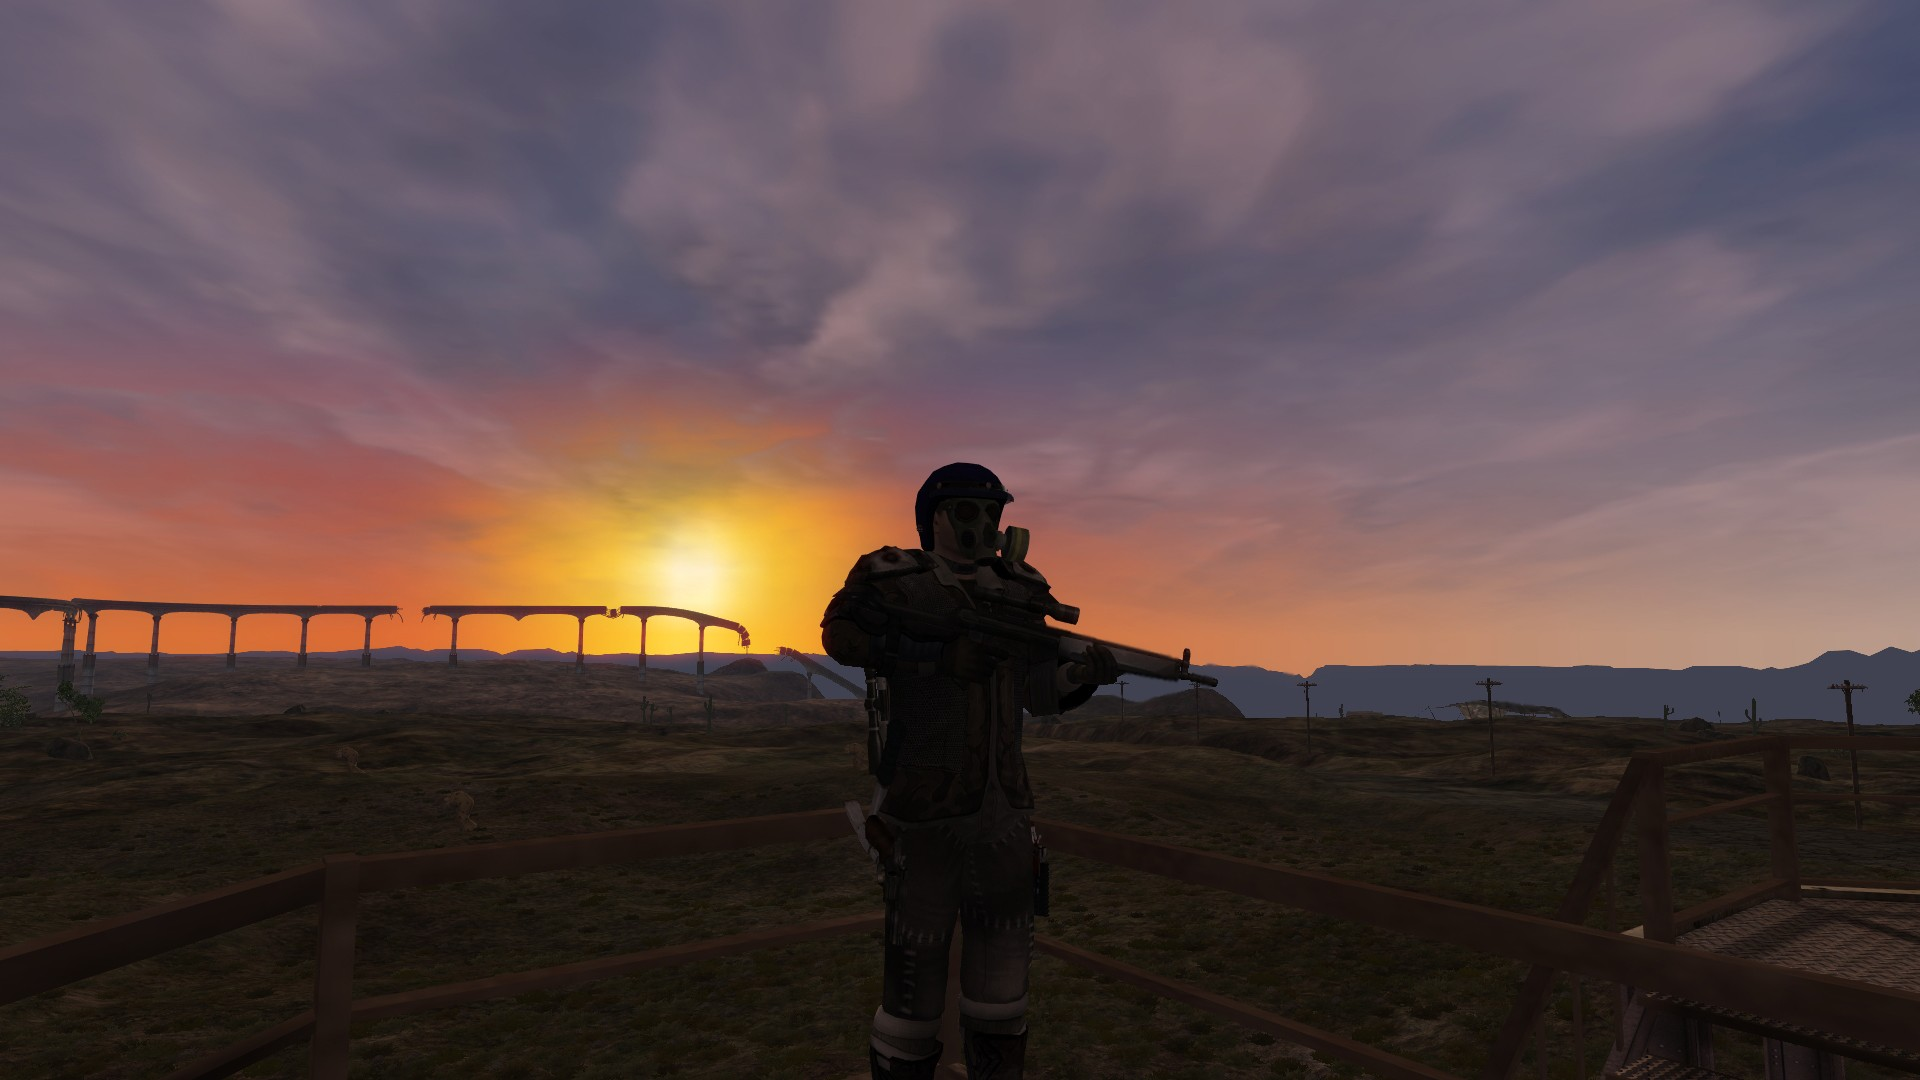 Fallen Earth - Watching the sunset on the watchtower at Watchtower 1